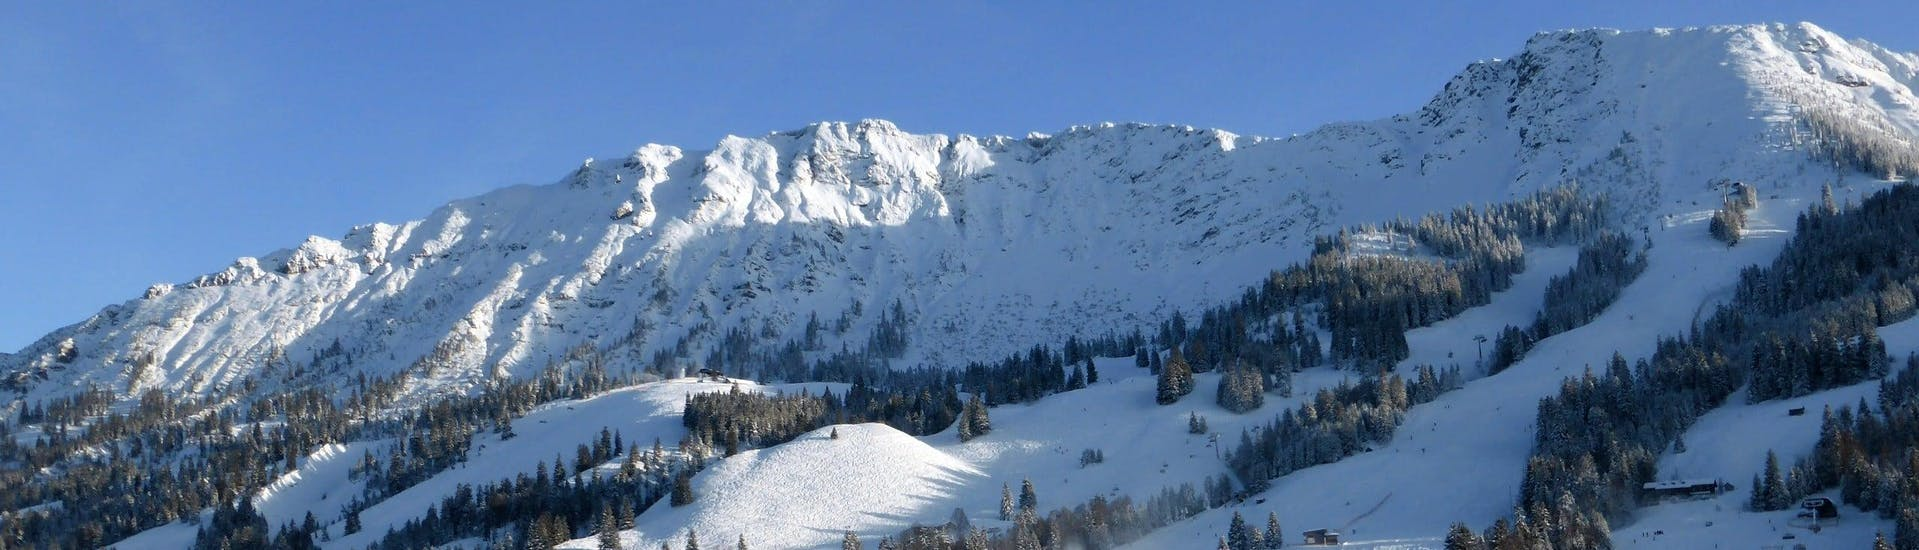 View over the sunny mountain landscape while learning to ski with the ski schools in Bad Hindelang.